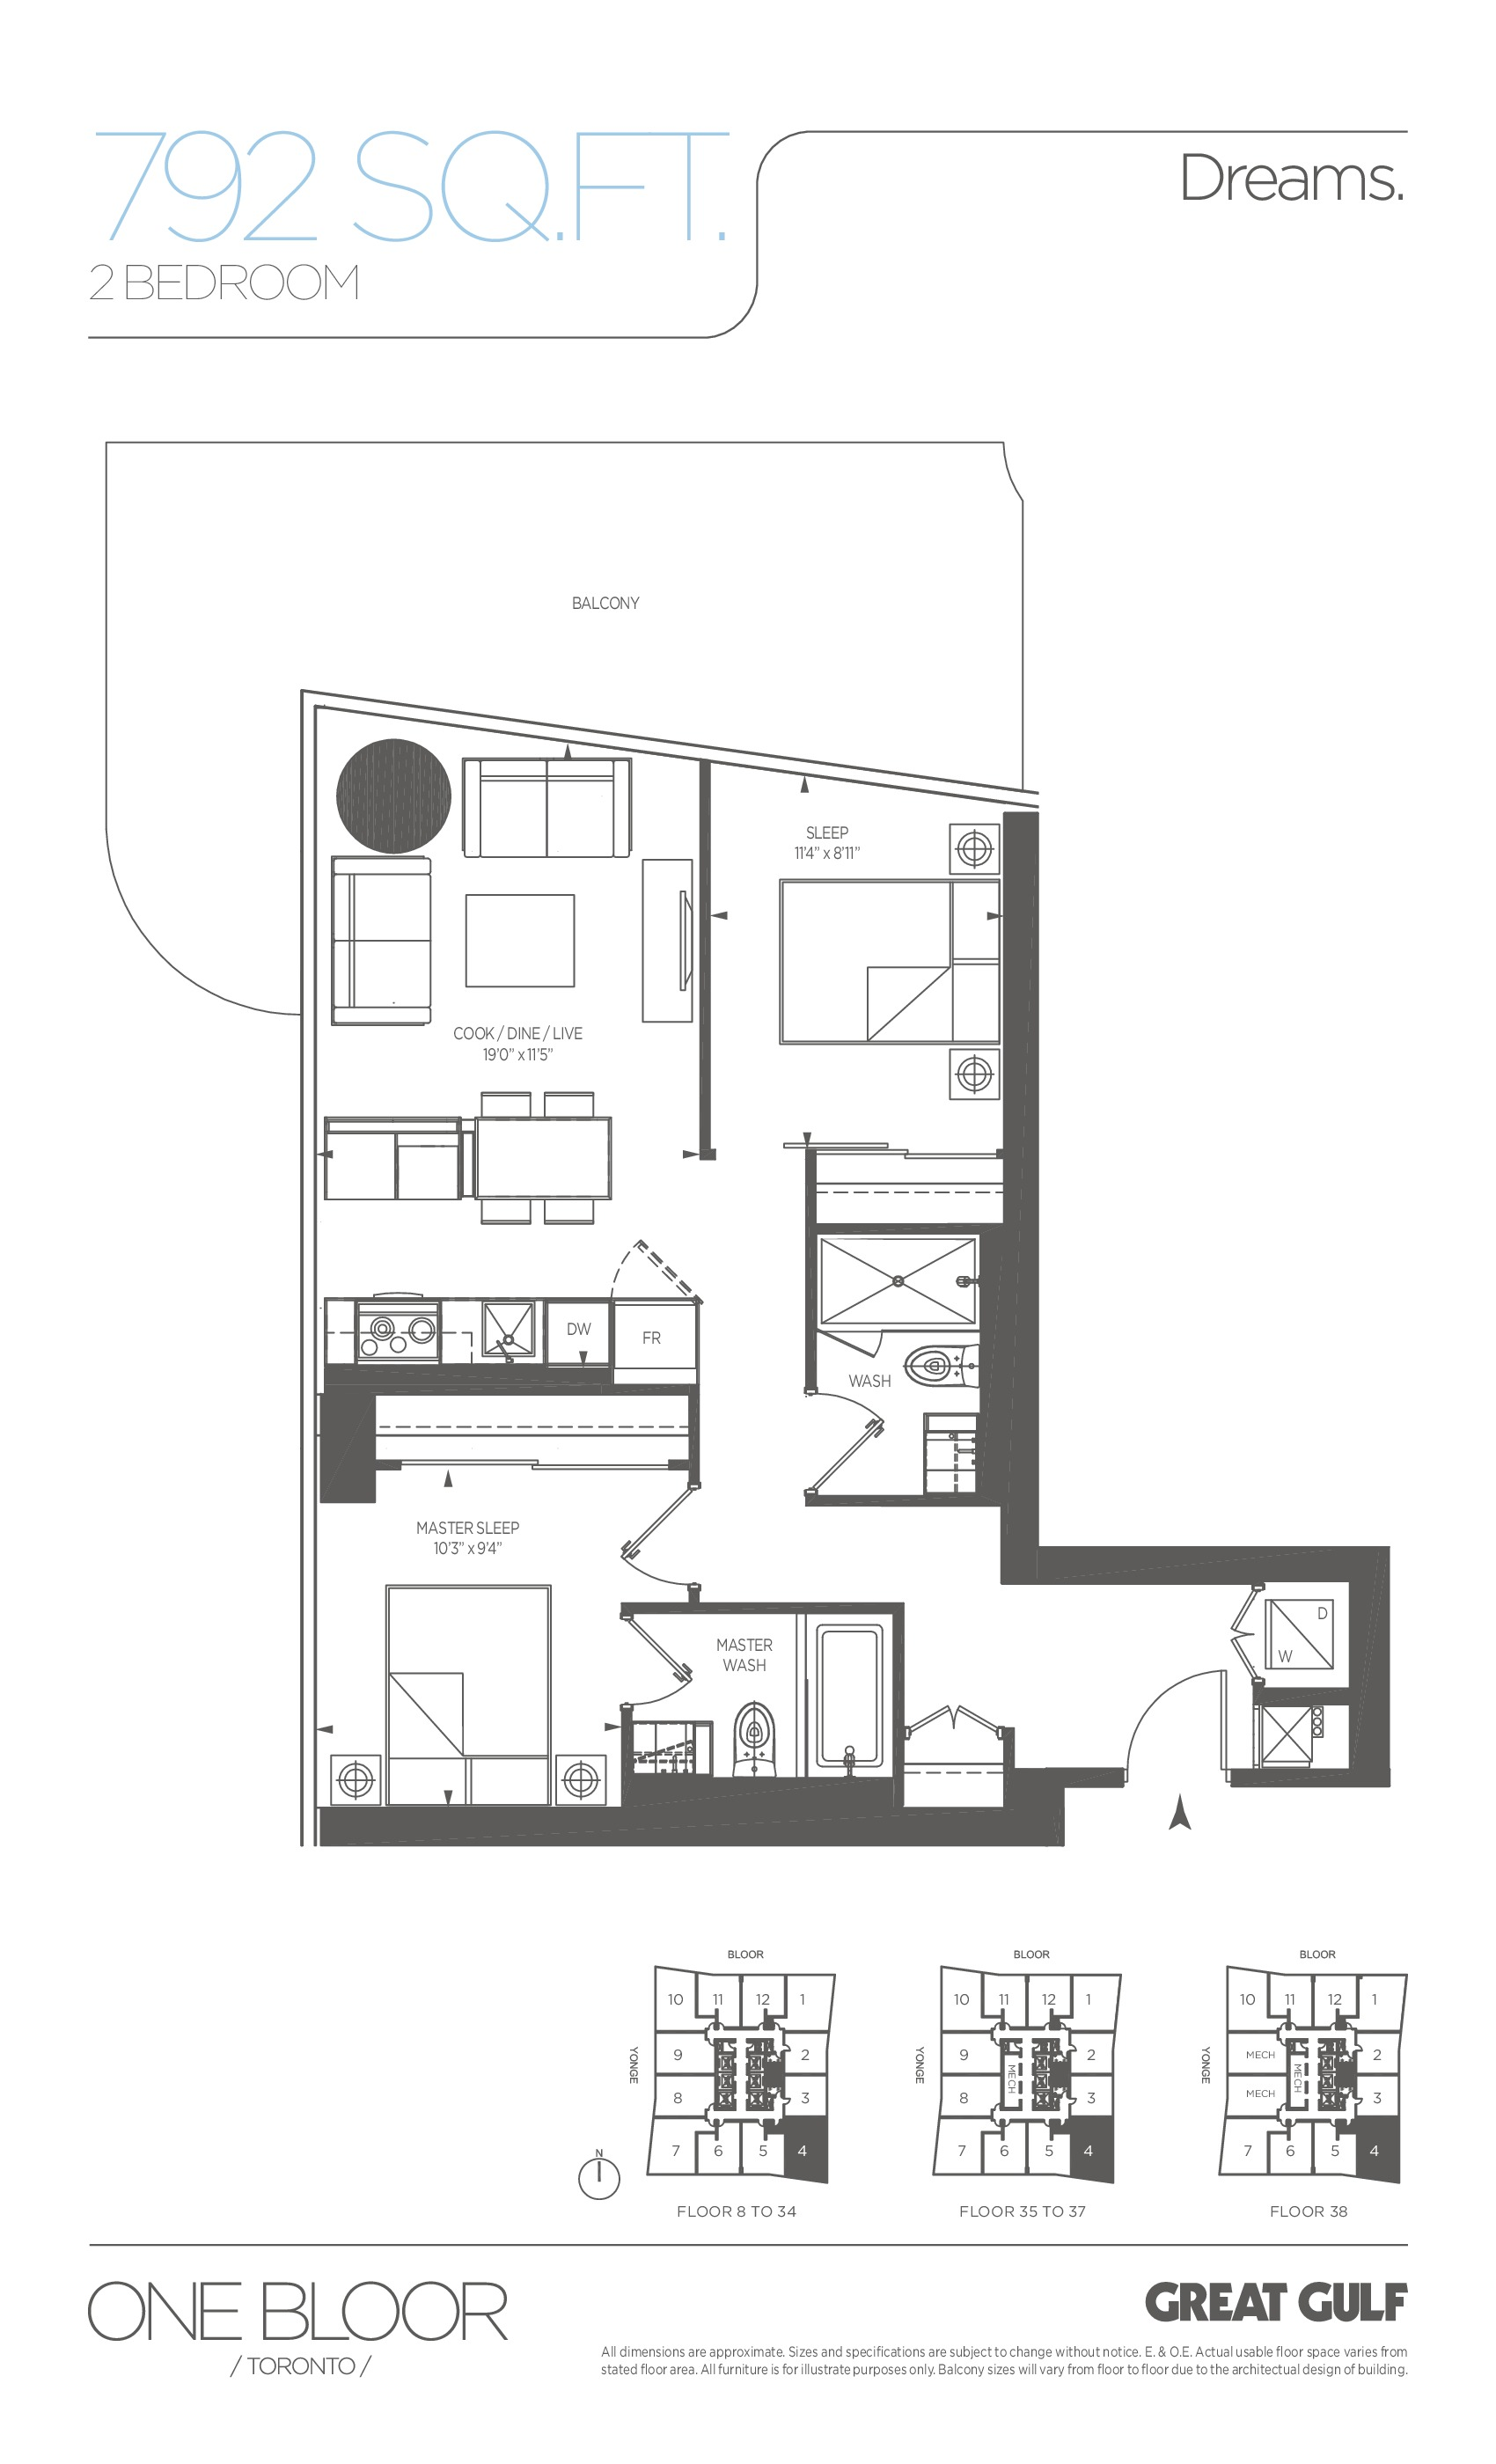 Dreams Floor Plan at One Bloor Condos - 792 sq.ft